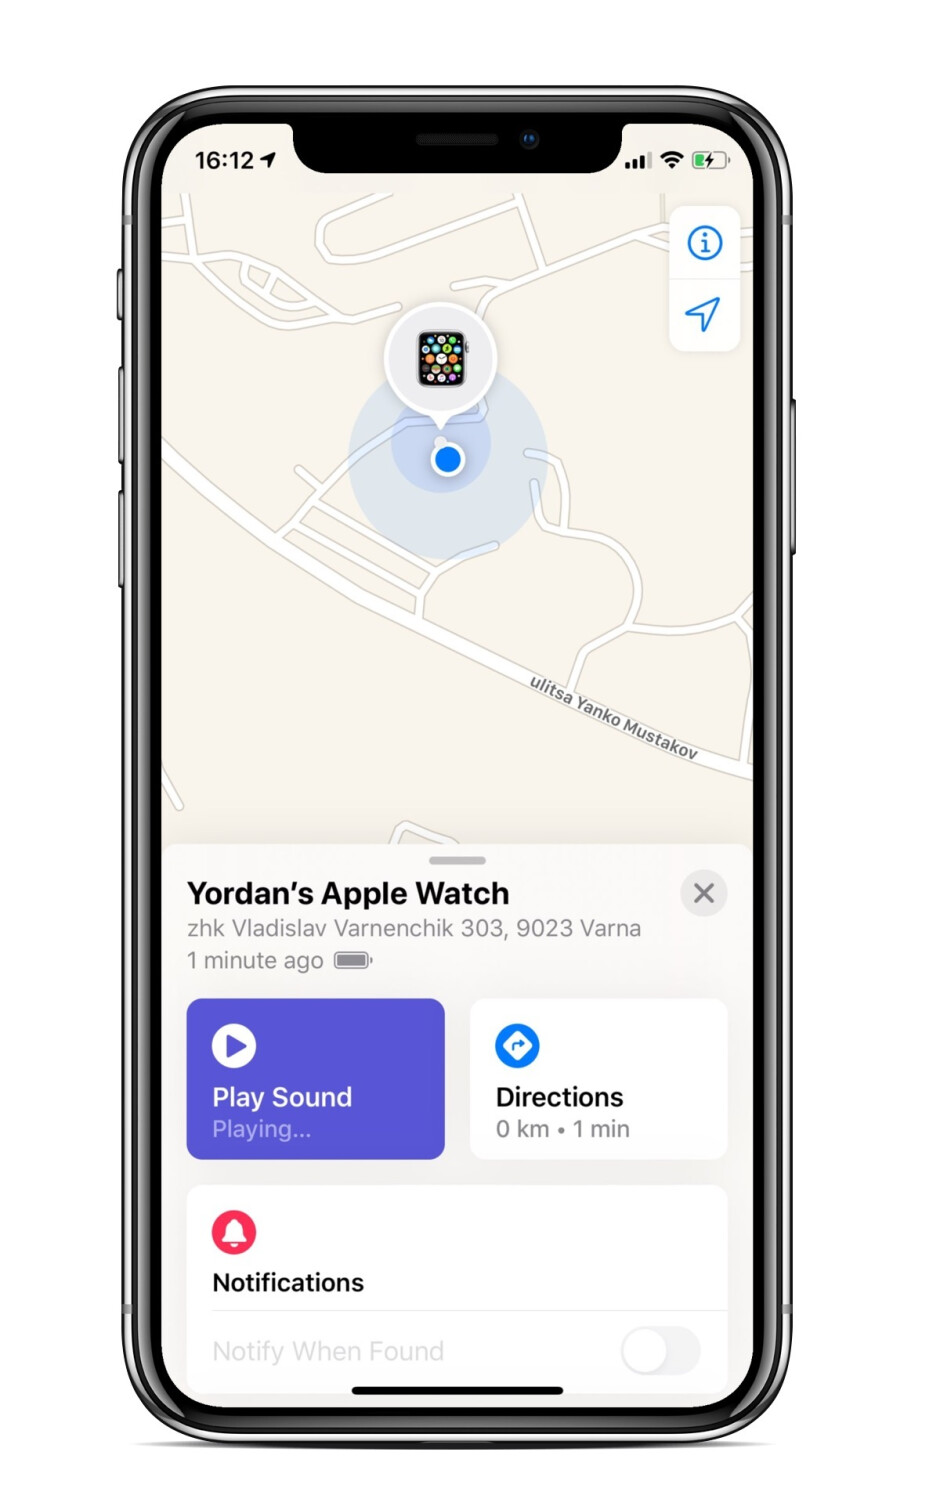 How to find my Apple Watch